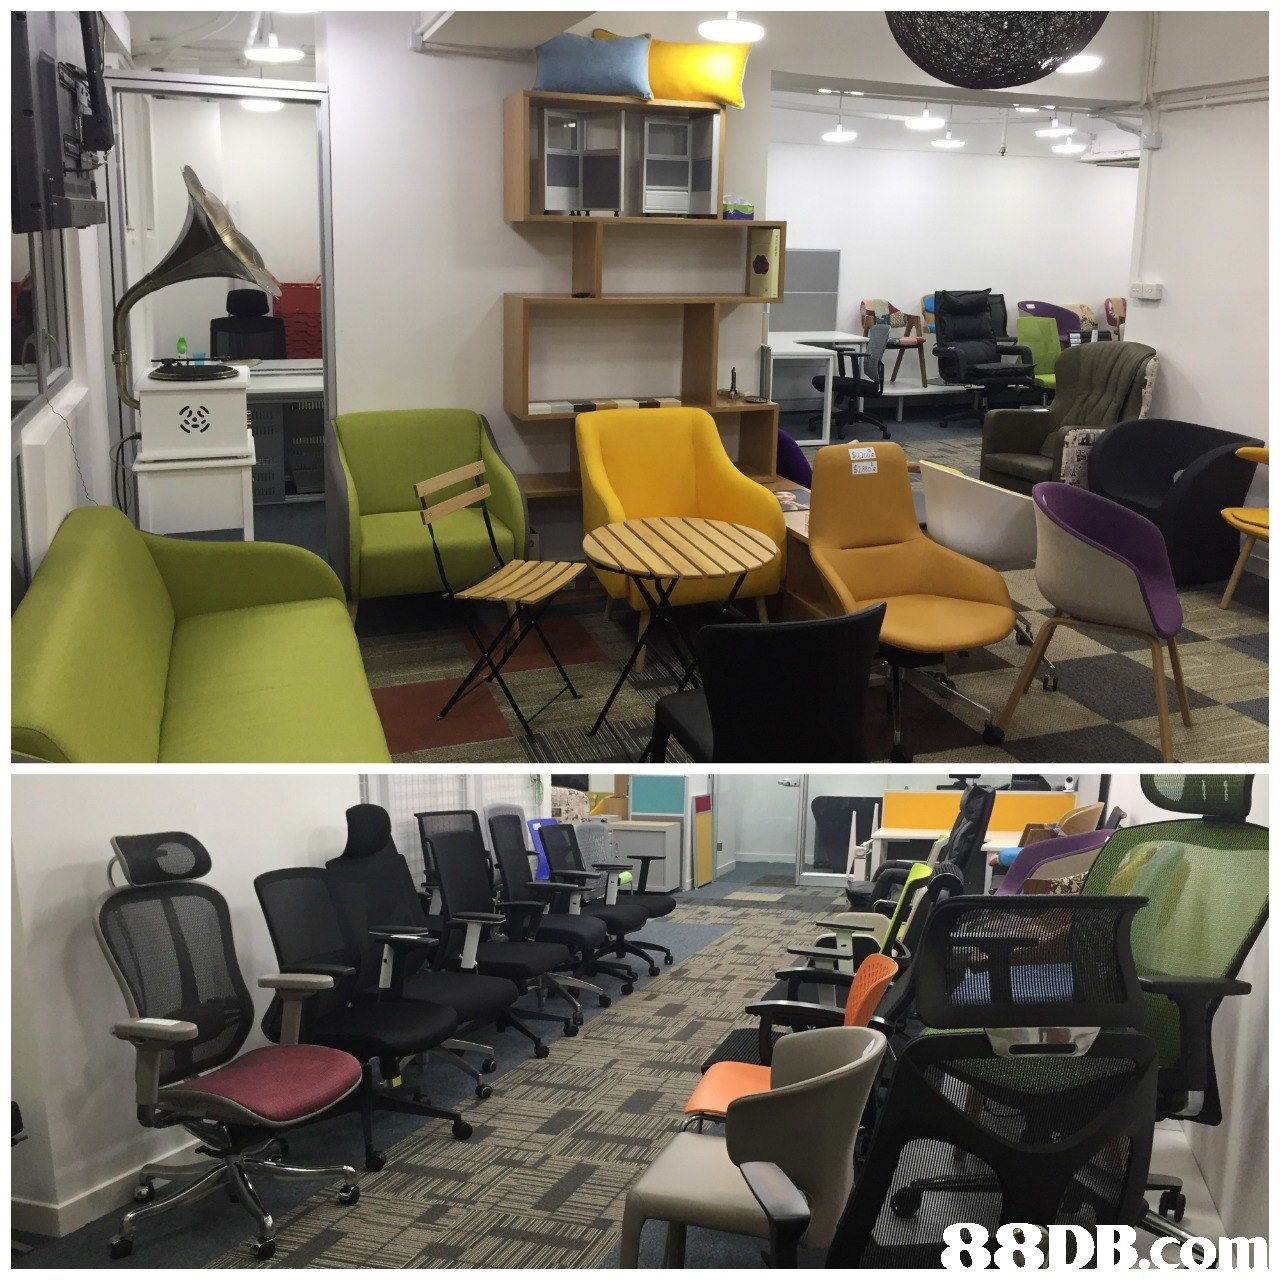 Furniture,Product,Office chair,Chair,Yellow